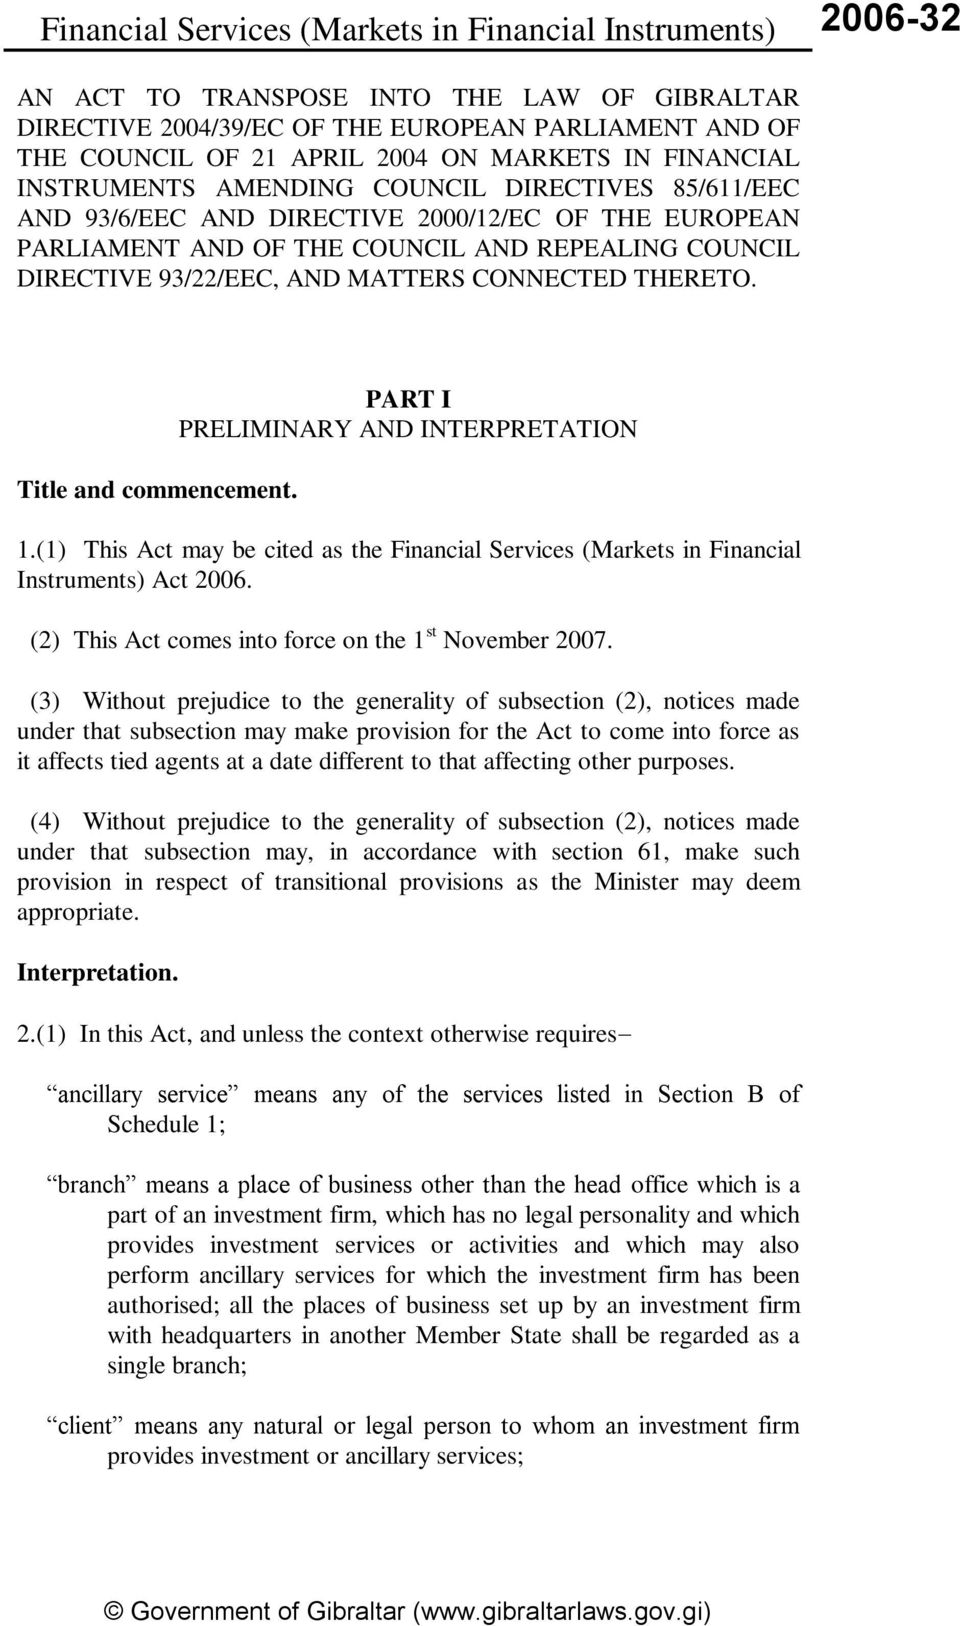 PART I PRELIMINARY AND INTERPRETATION 1.(1) This Act may be cited as the Financial Services (Markets in Financial Instruments) Act 2006. (2) This Act comes into force on the 1 st November 2007.